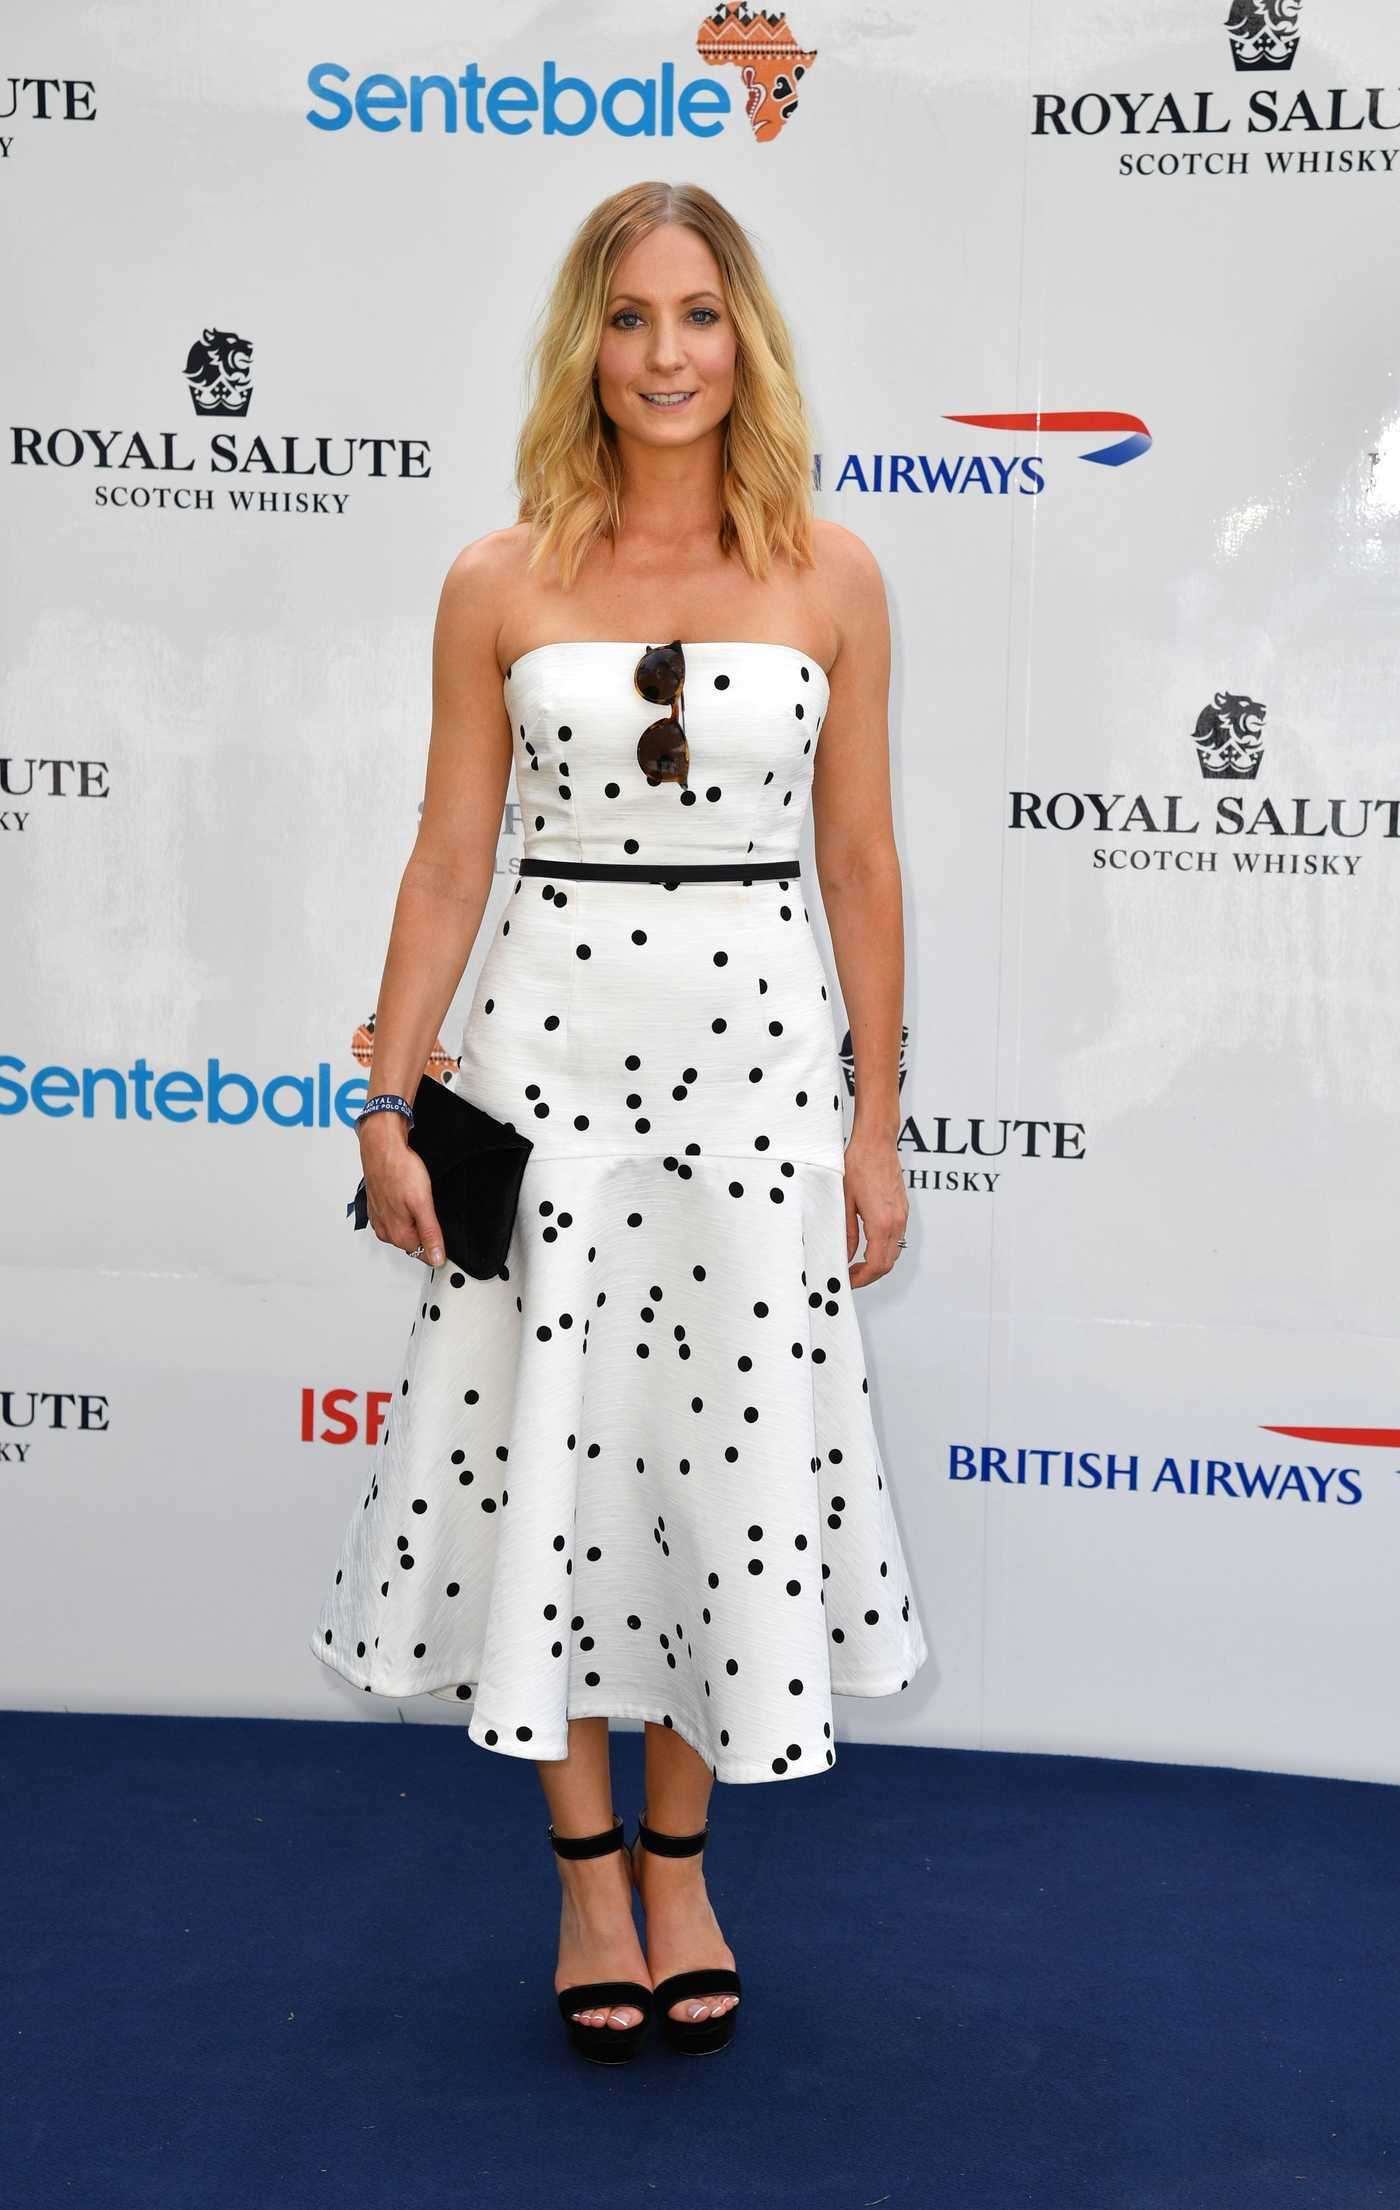 Joanne Froggatt at the Sentebale Royal Salute Polo Cup in Singapore 06/05/2017